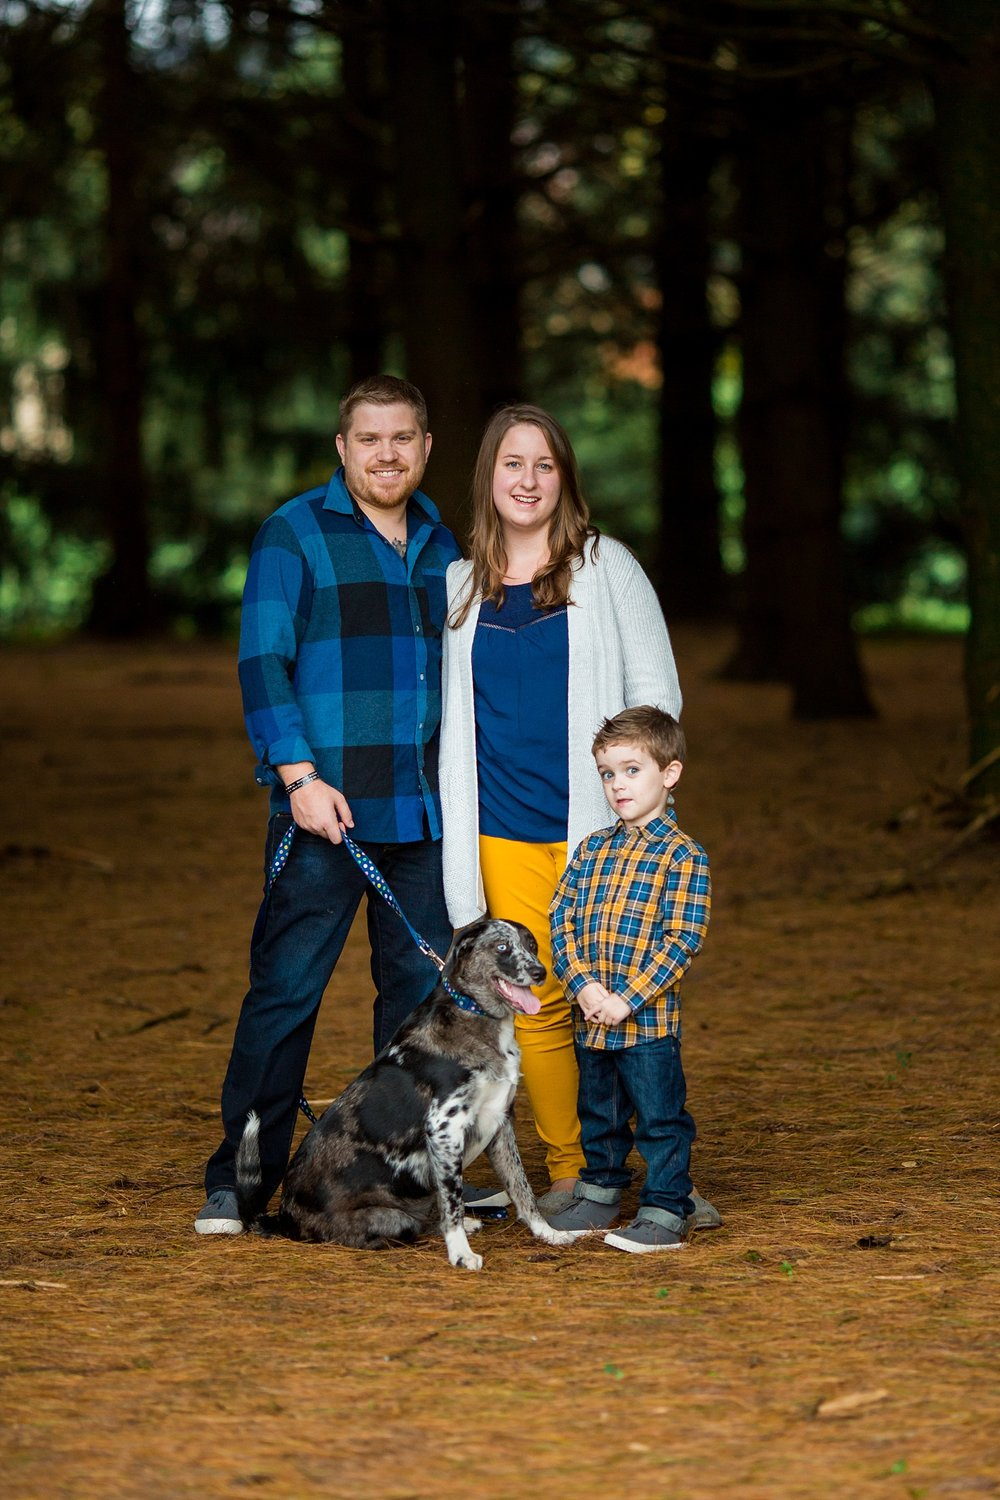 Highlands Wyomissing Fall Family Photoshoot